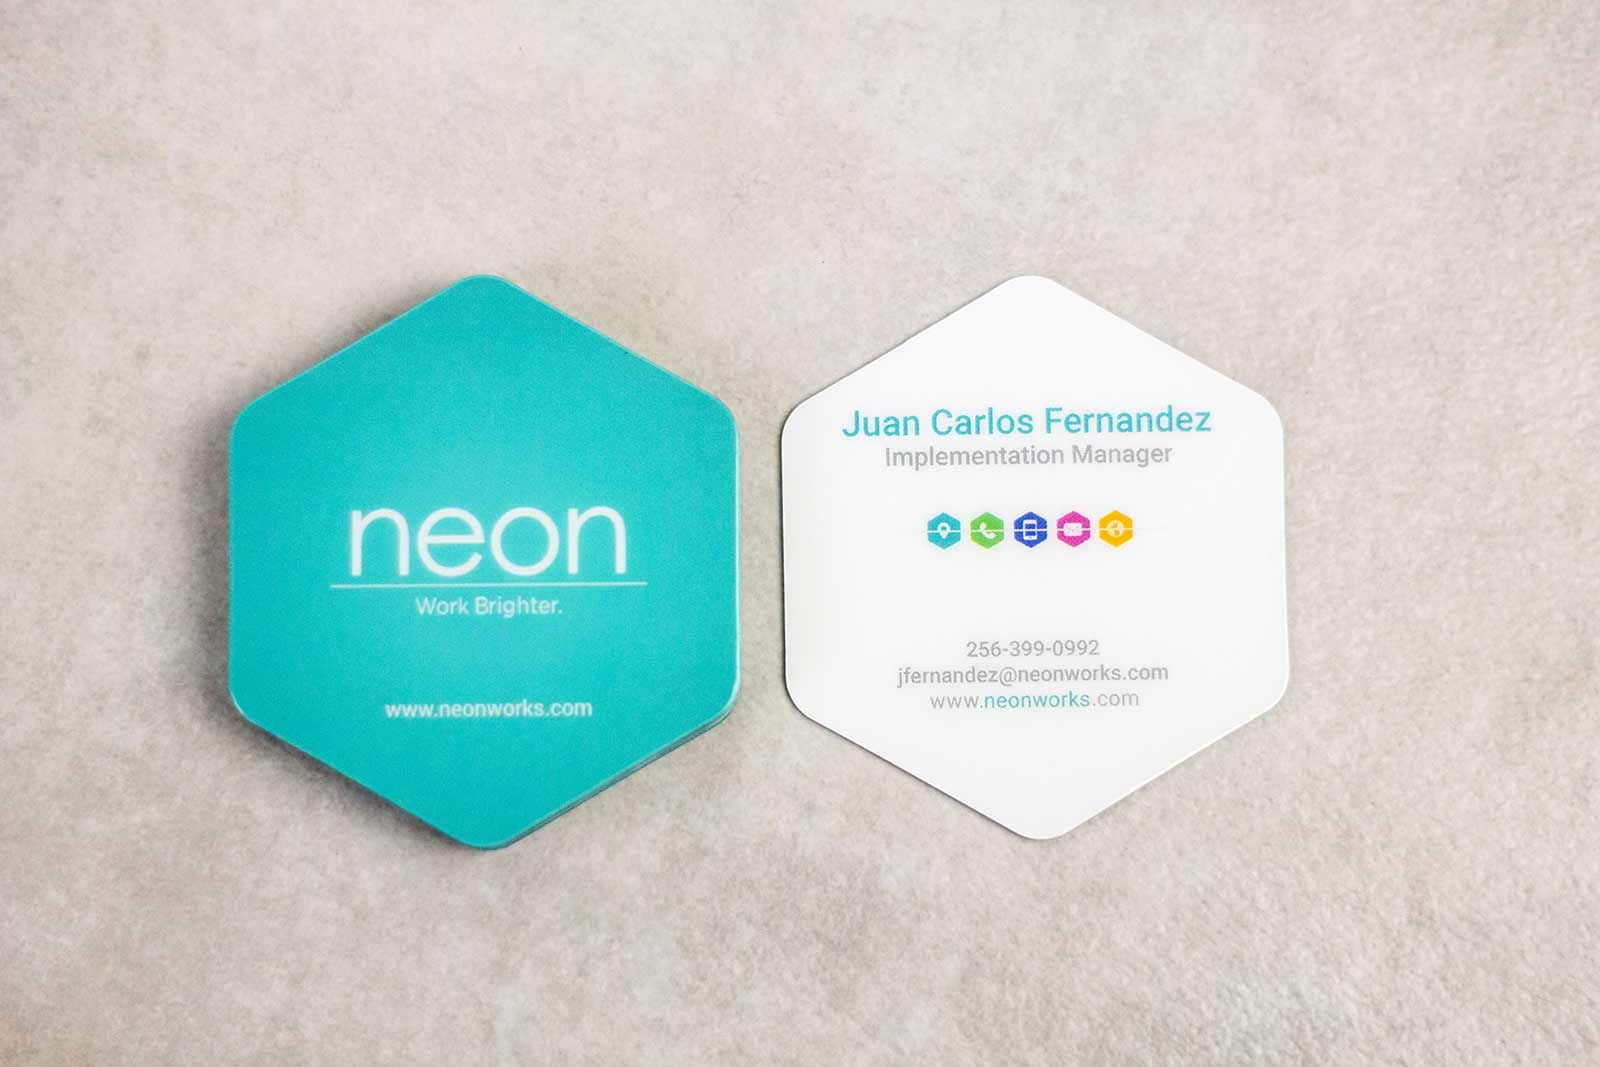 Hexagon shaped business cards business cards pinterest hexagon shaped business cards reheart Gallery